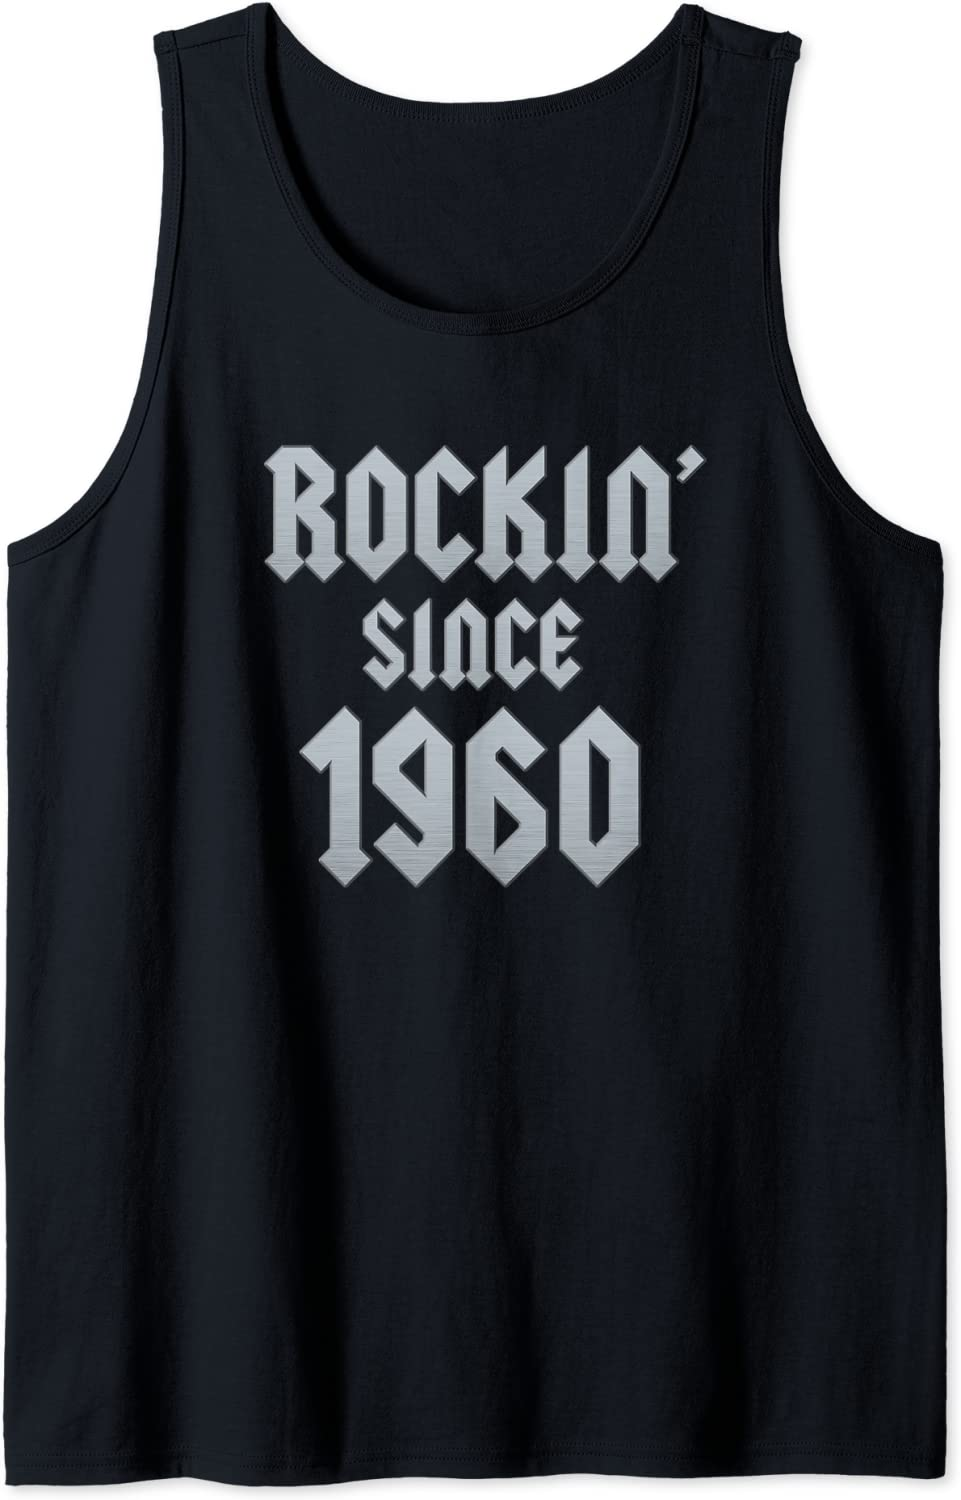 Gift for 61 Year Old: Classic Tank Birthday Cheap sale 61st 1960 Challenge the lowest price of Japan Top Rock